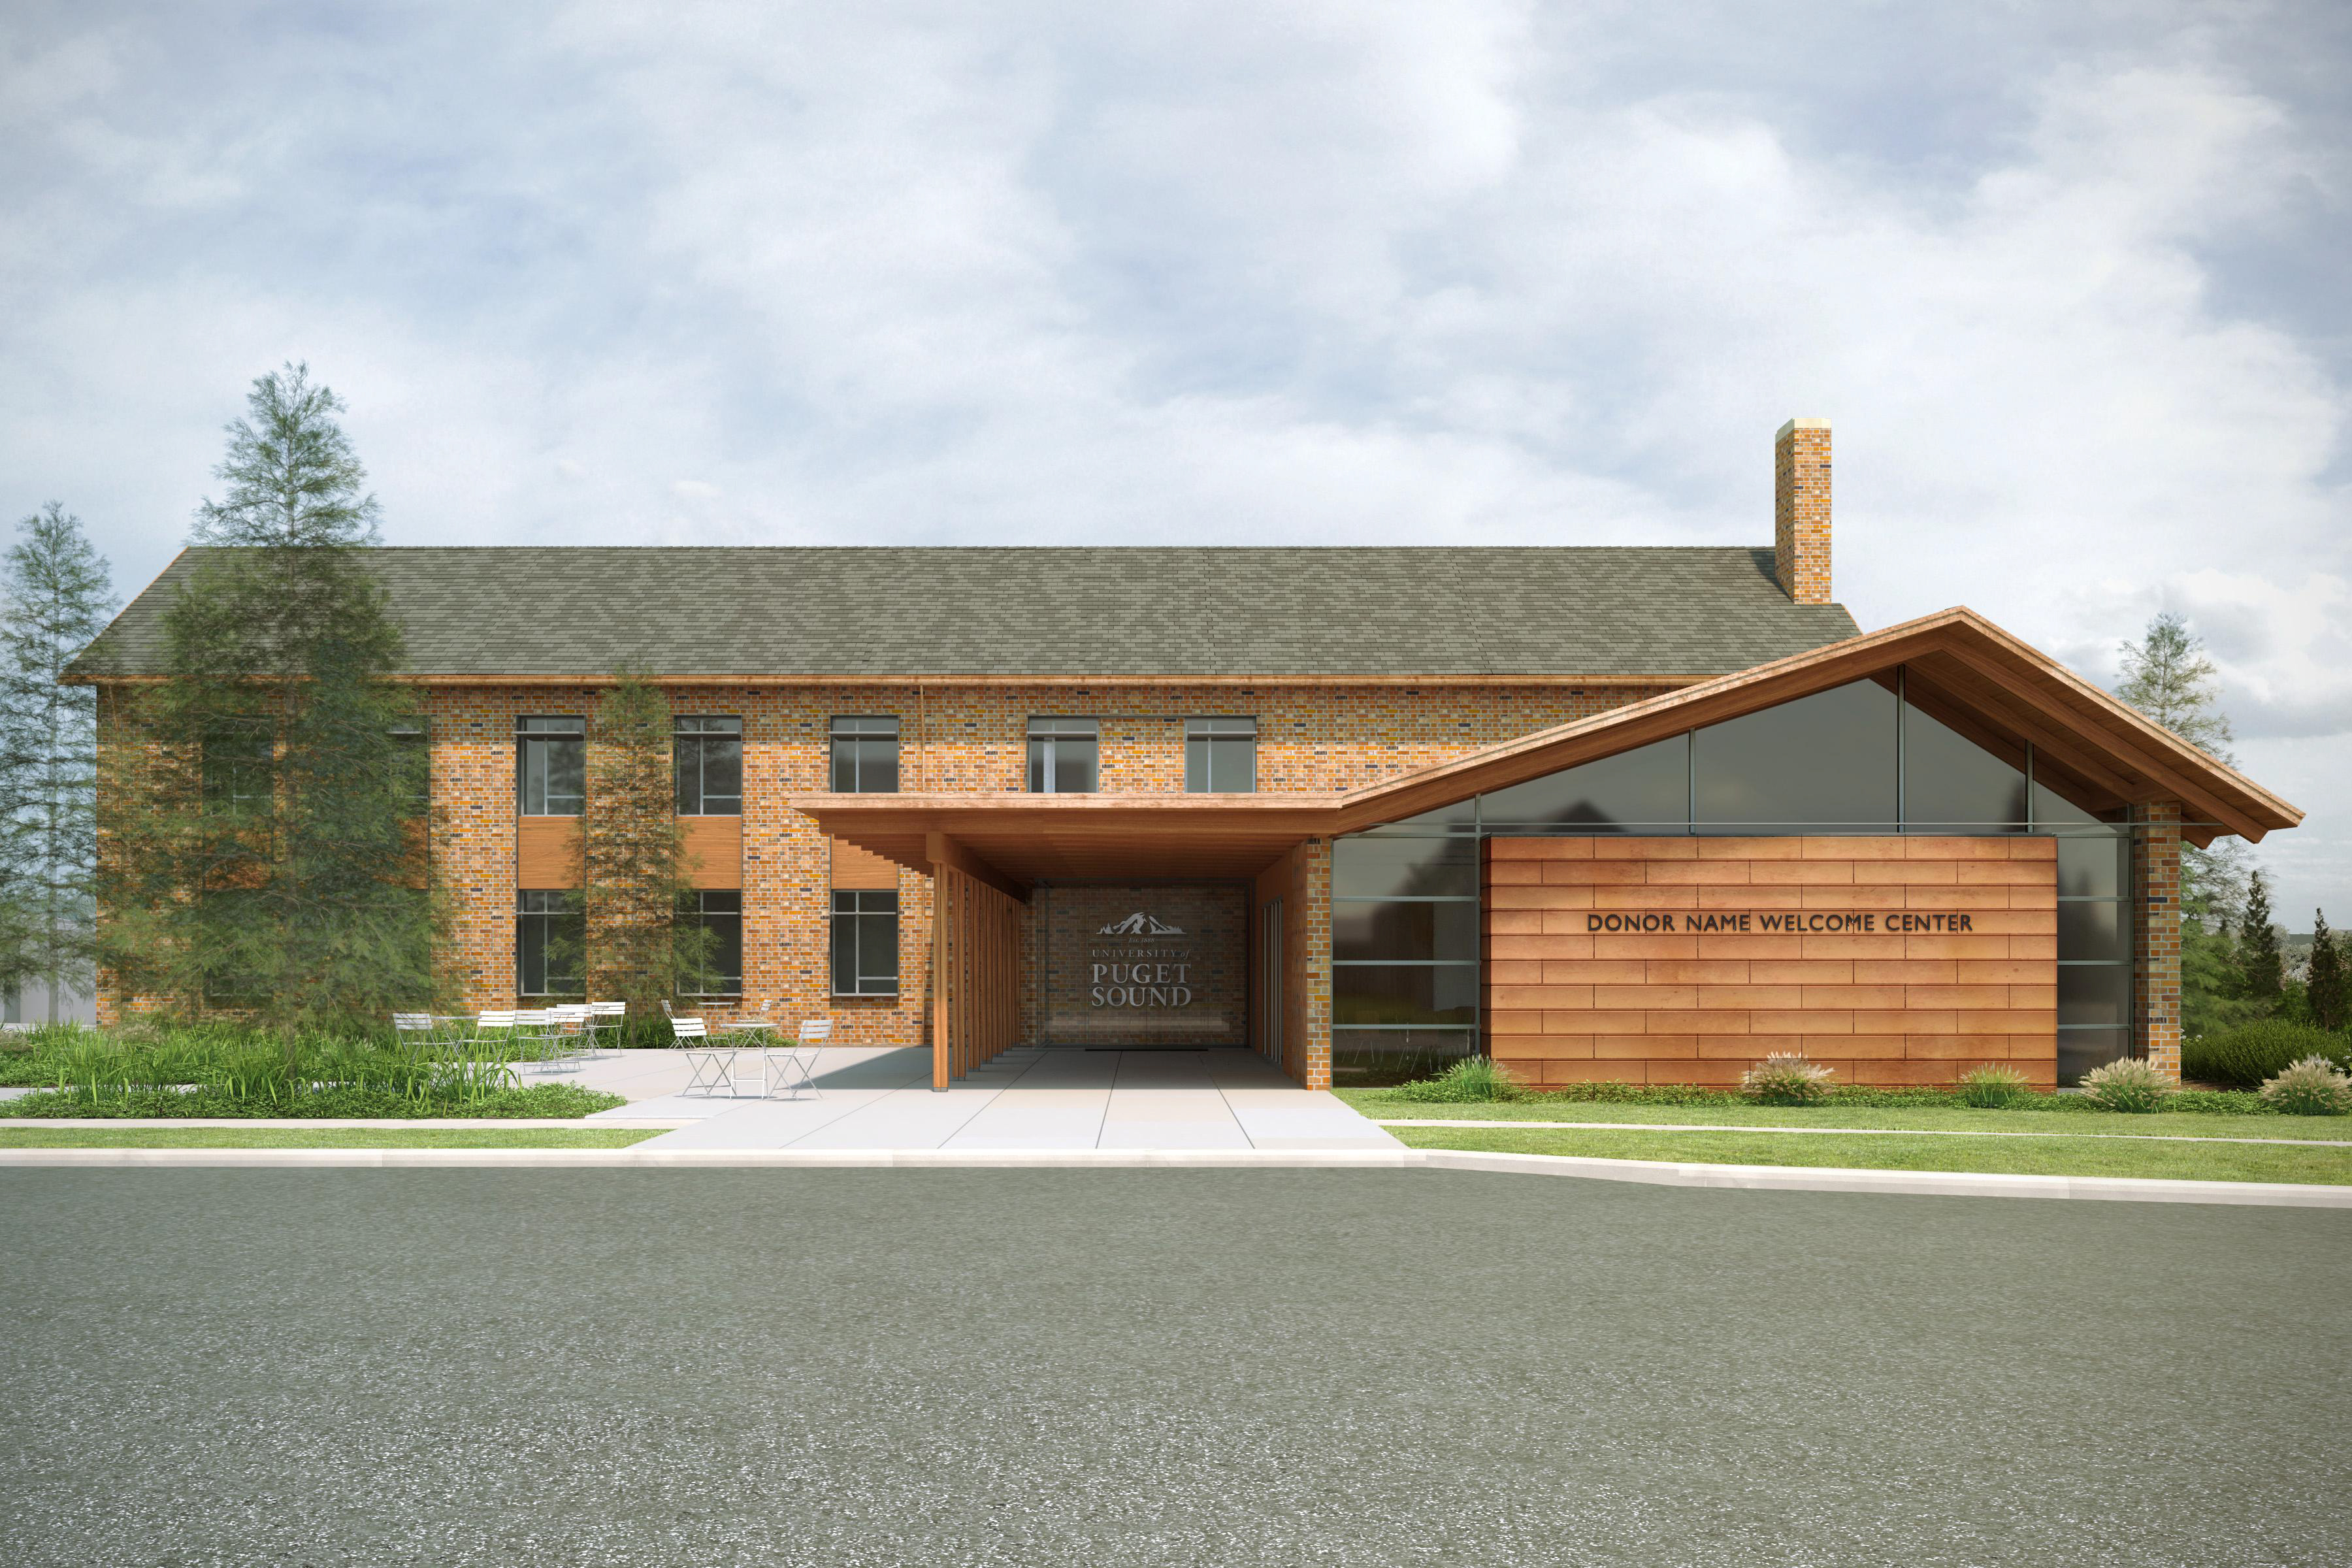 Welcome Center Rendering